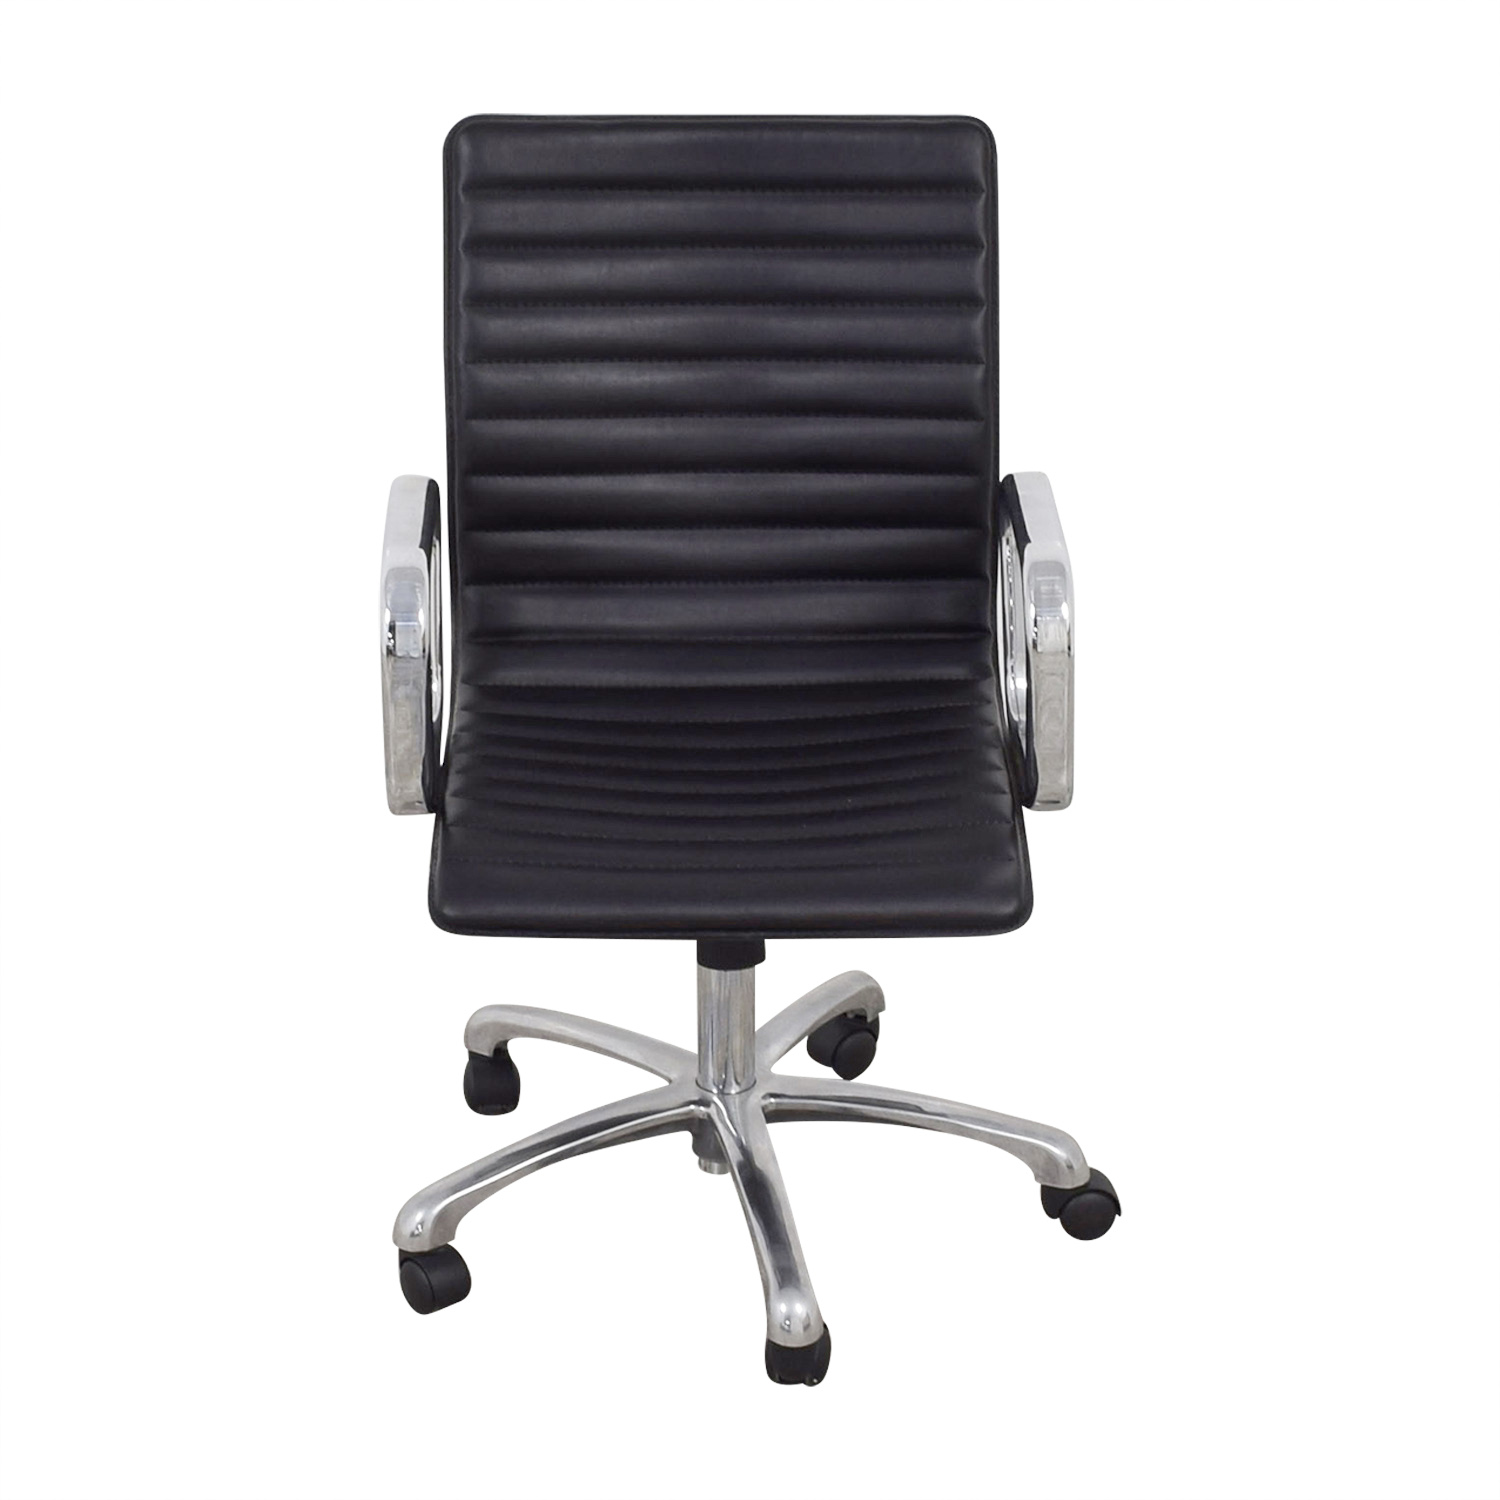 Black Leather Desk Chair used